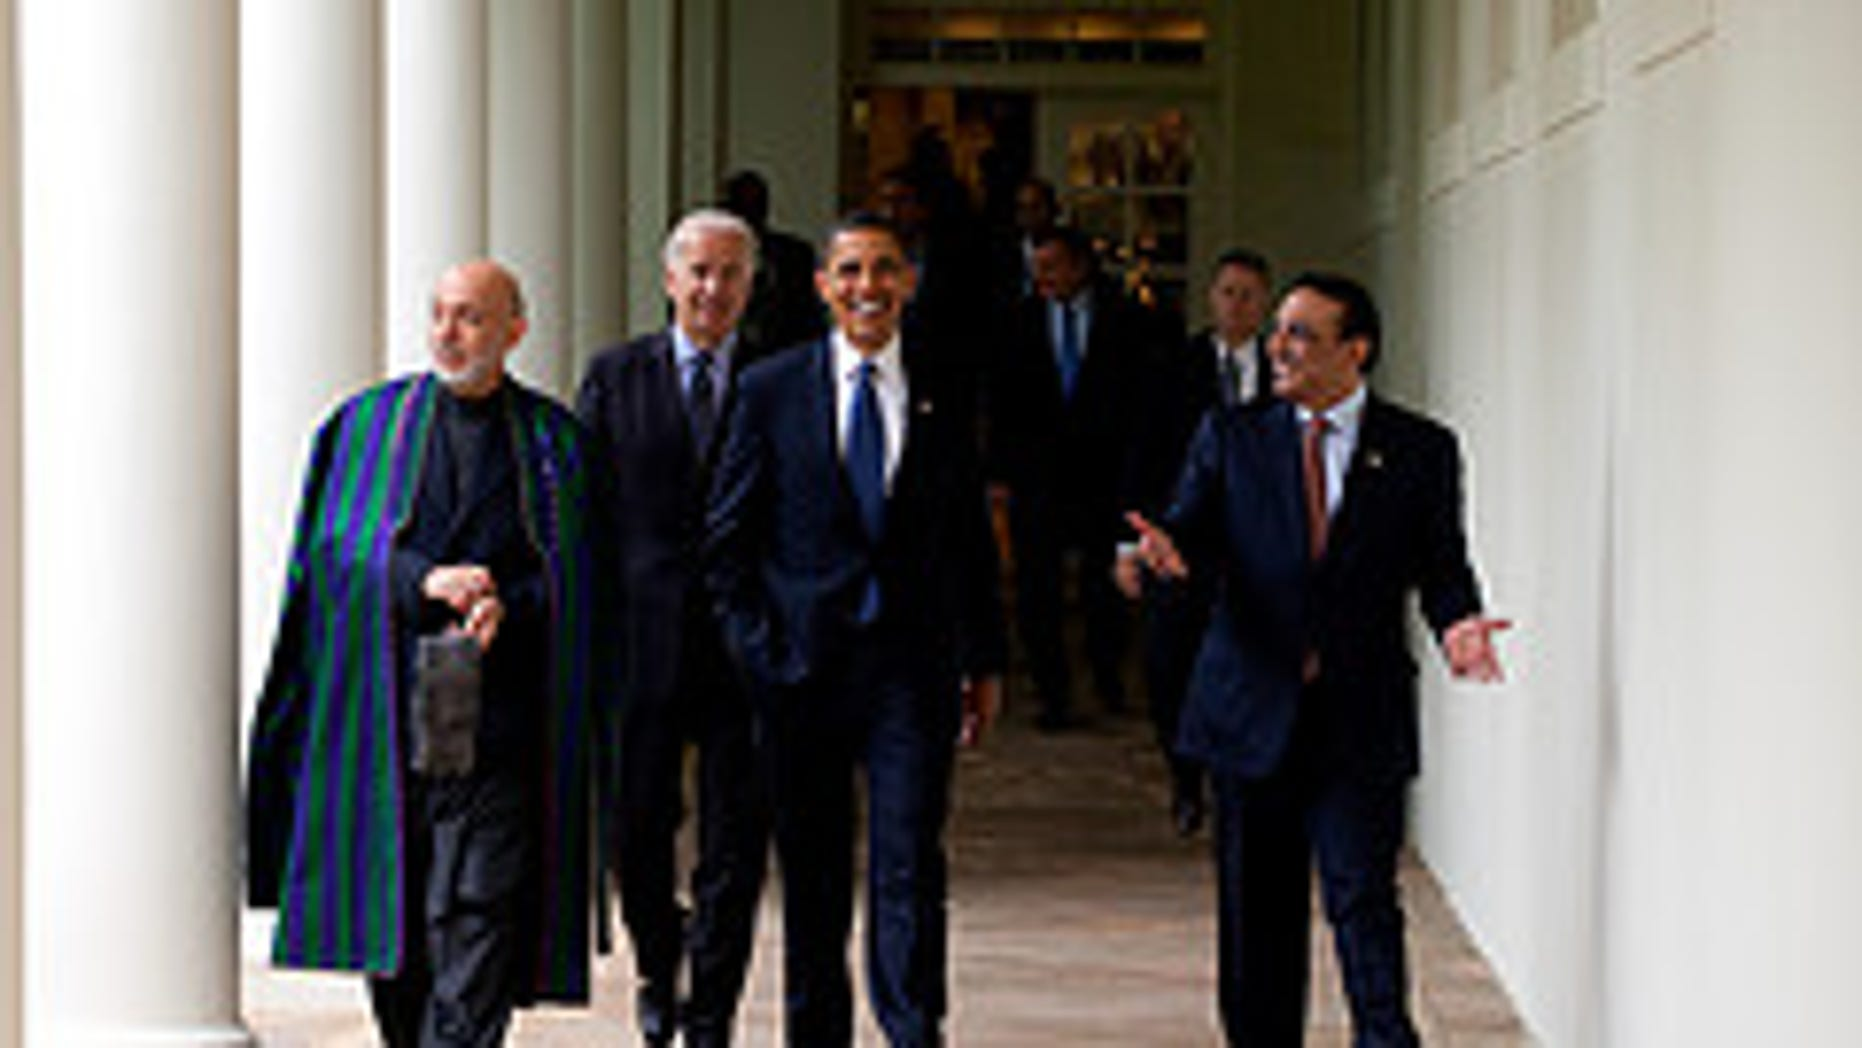 Presidents Obama, Karzai and Zardari, share a moment with Vice President Biden